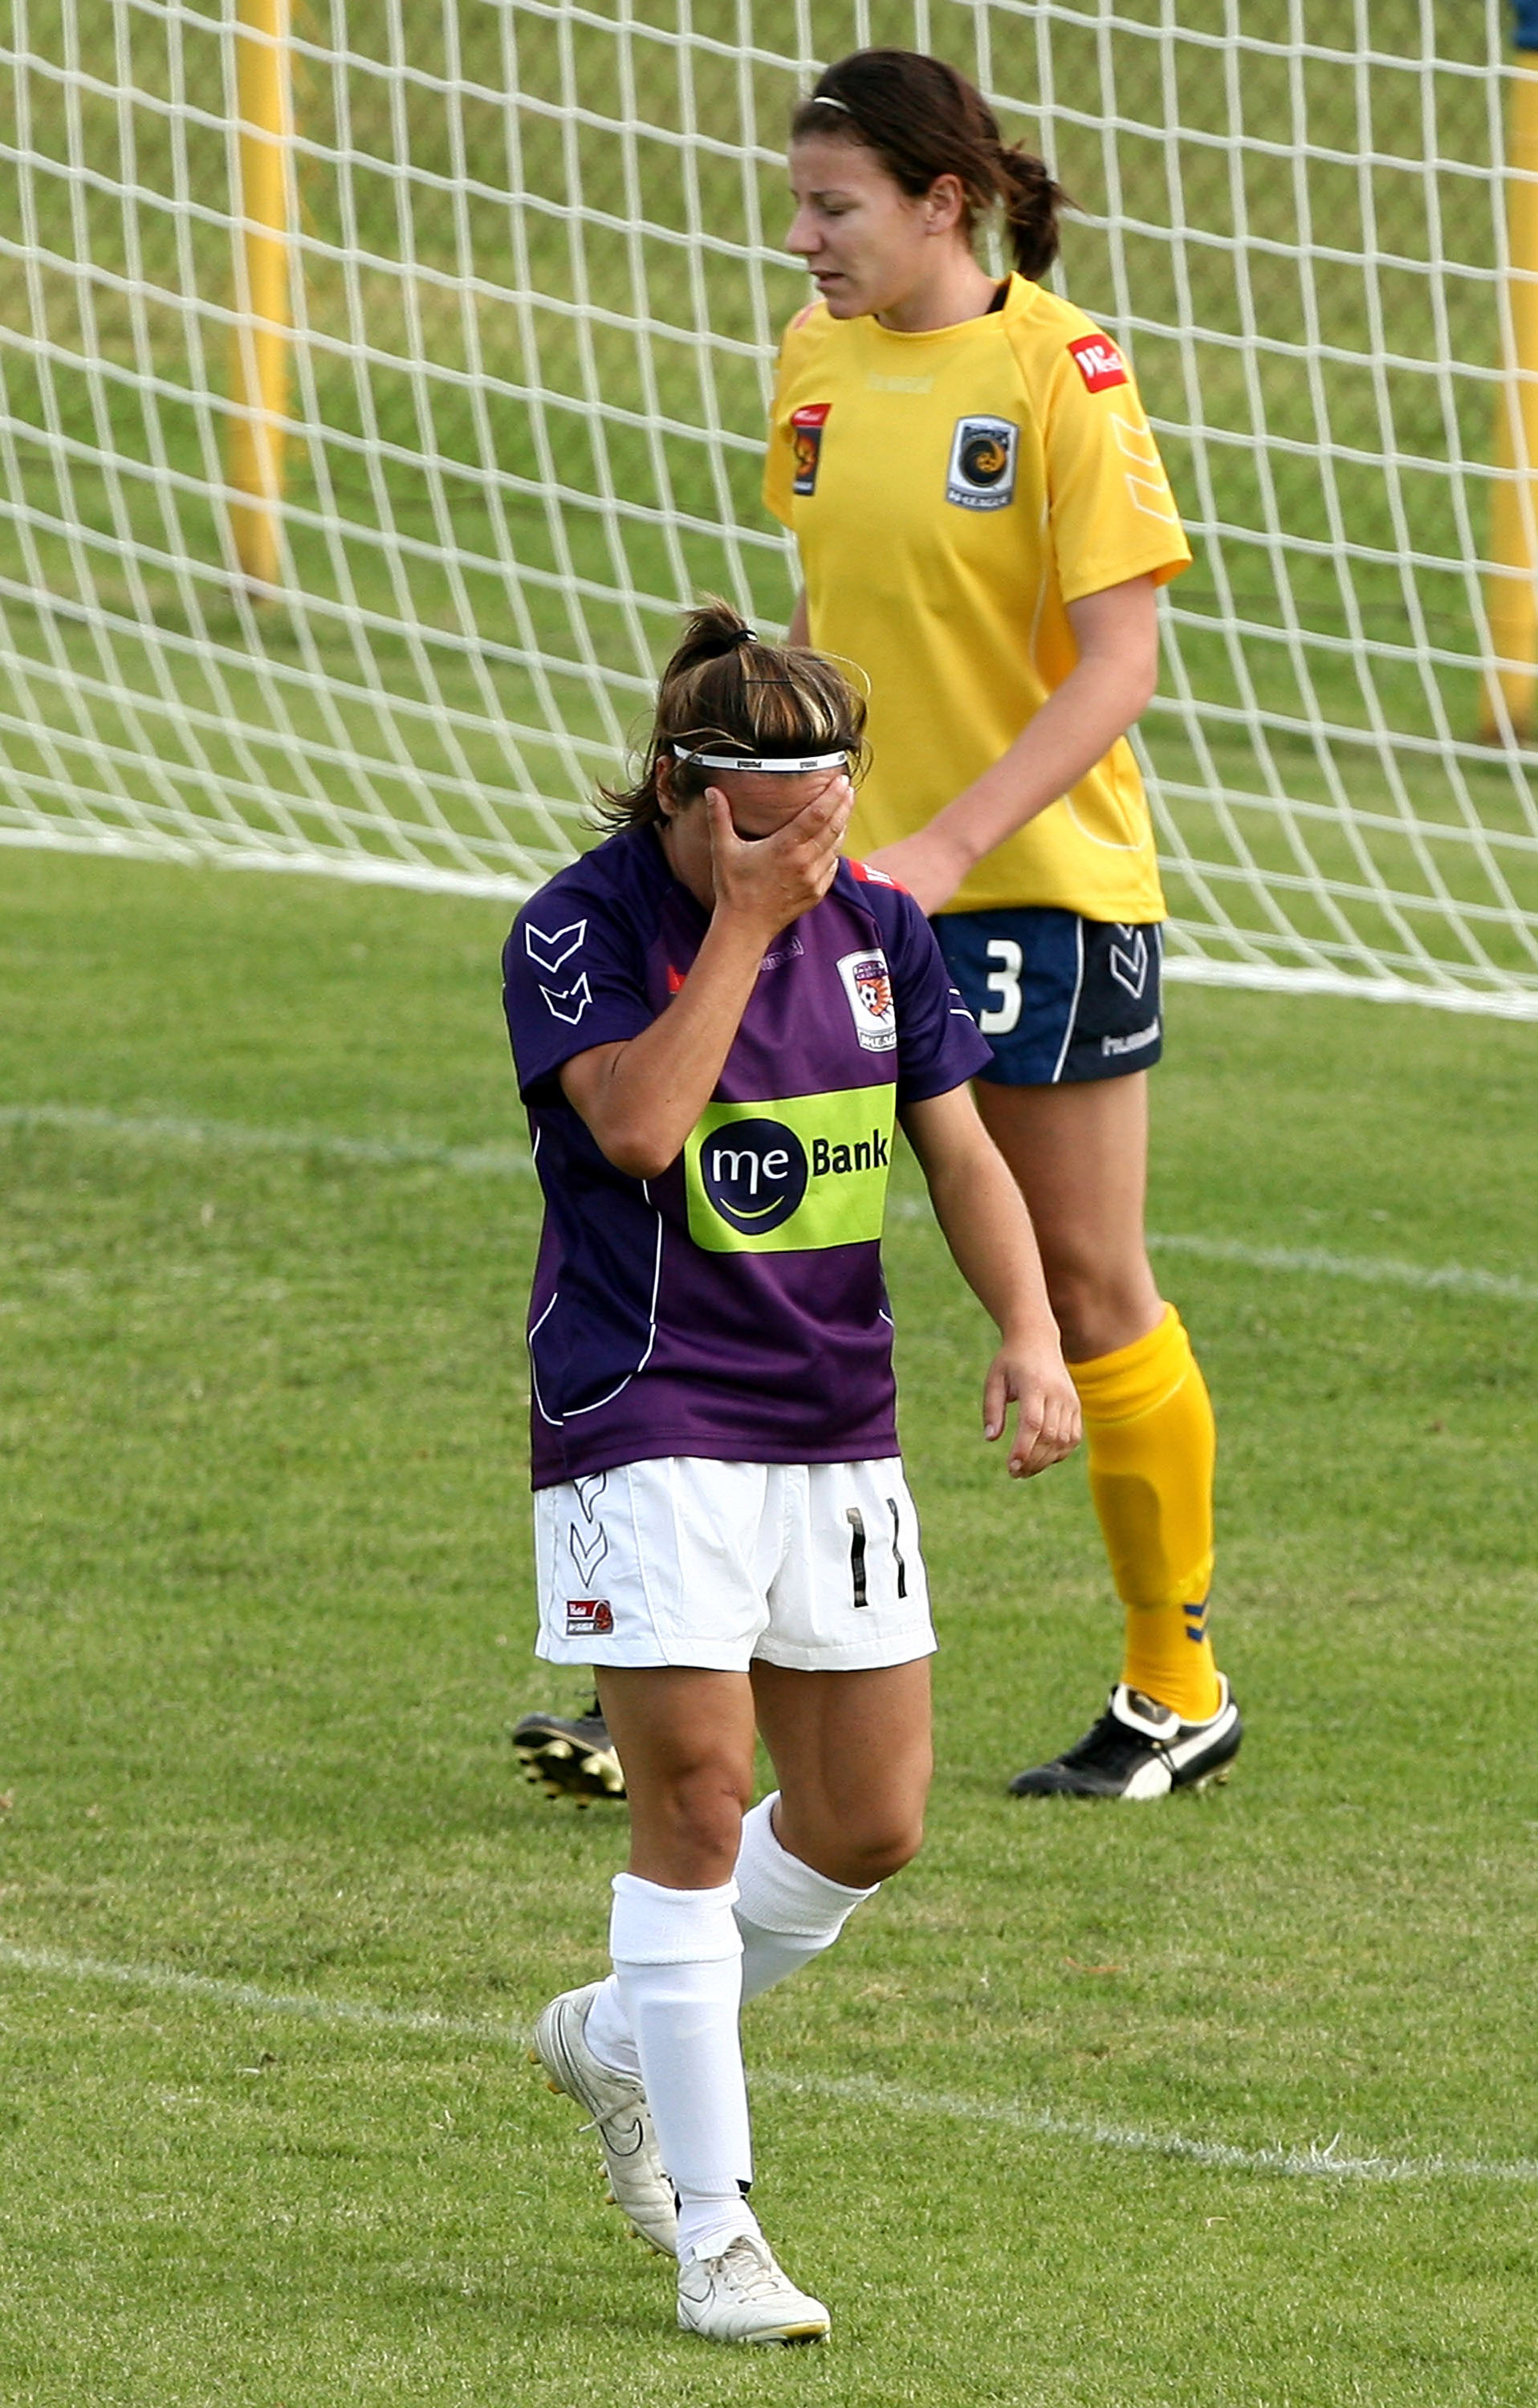 PERTH, AUSTRALIA - NOVEMBER 07: Lisa De Vanna of the Glory reacts after missing a shot on goal during the round six W-League match between the Perth Glory and the Central Coast Mariners at Clipsal Stadium on November 7, 2009 in Perth, Australia.  (Photo b